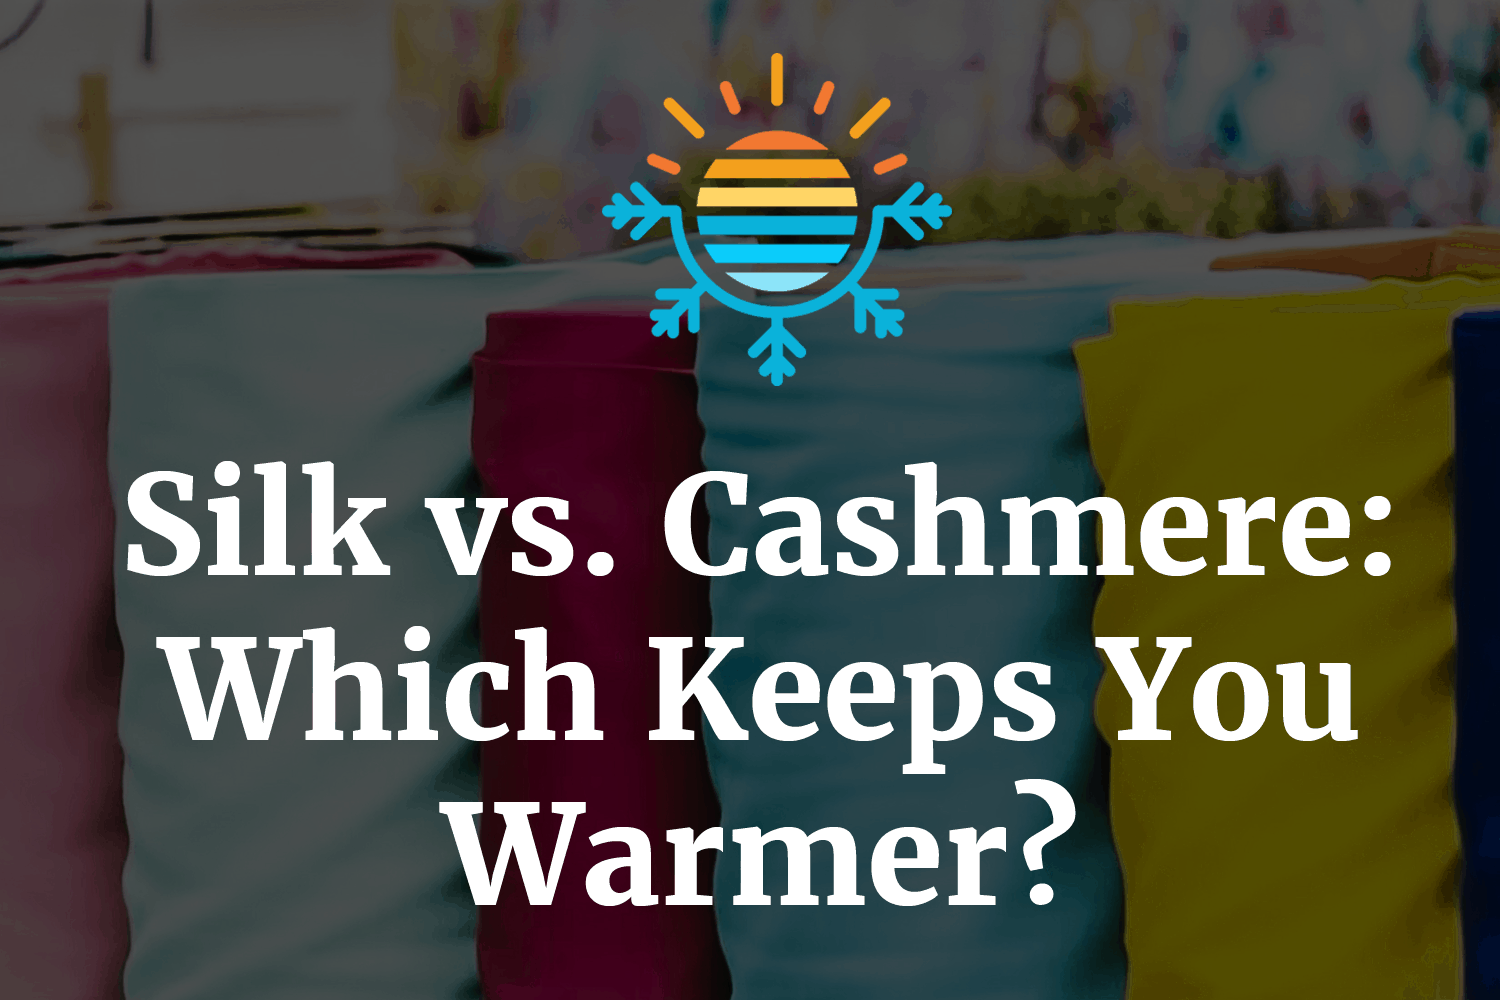 Silk vs. Cashmere: Which Keeps You Warmer?